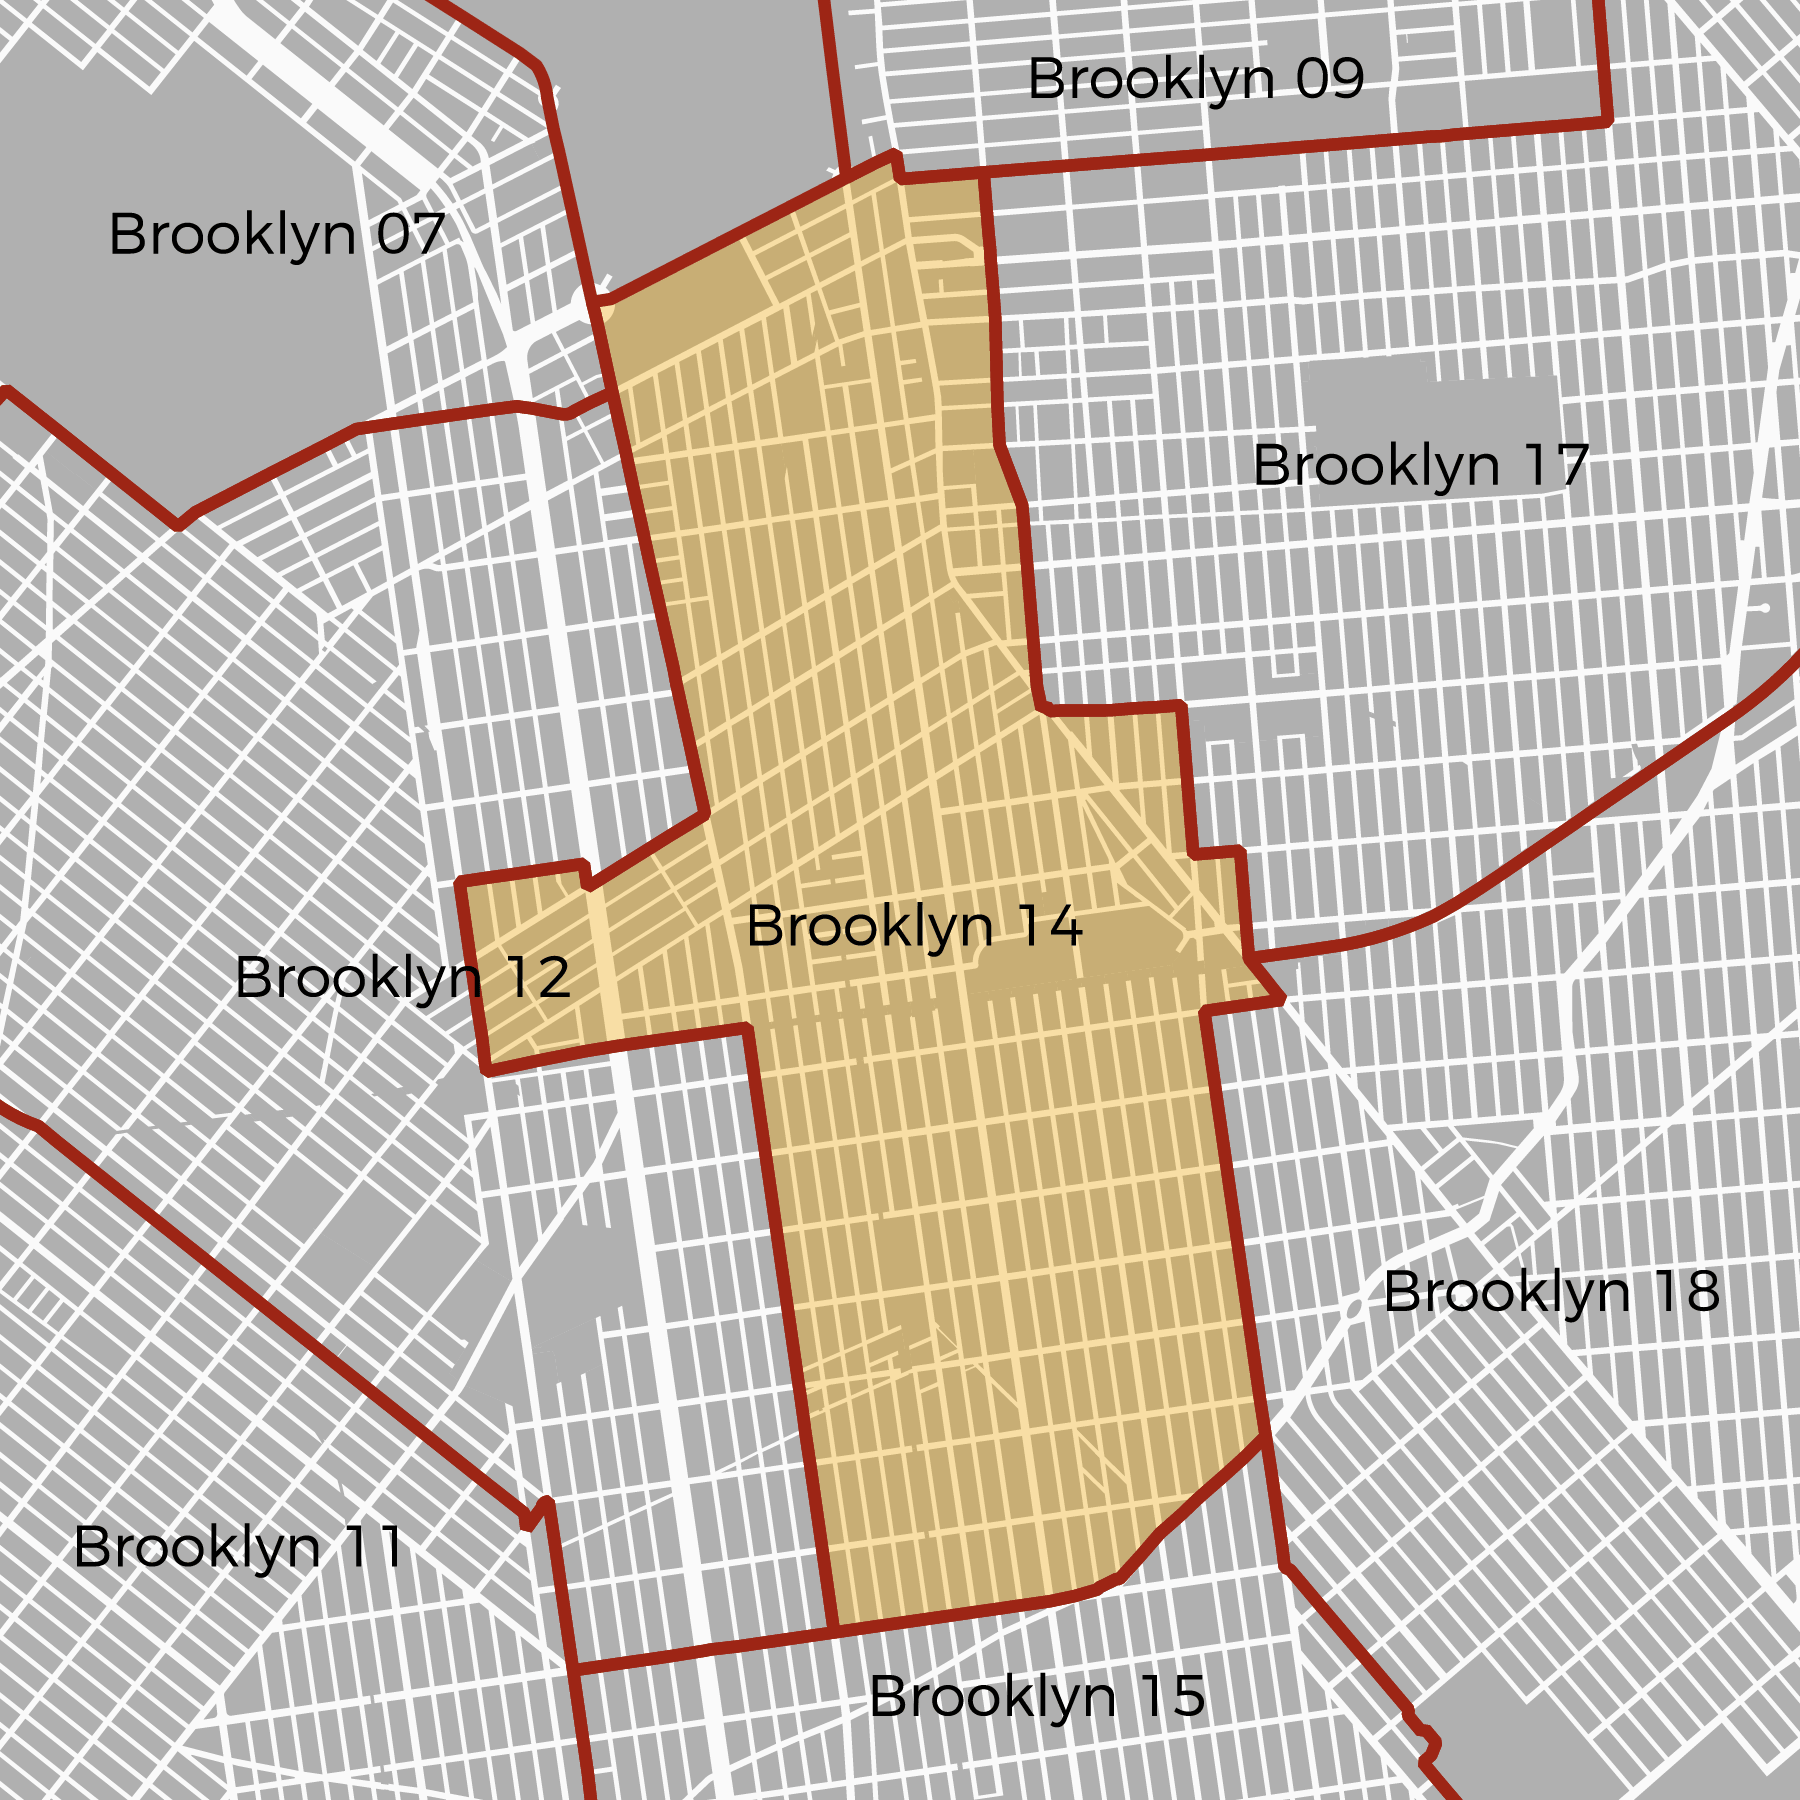 Brooklyn Community Board 14